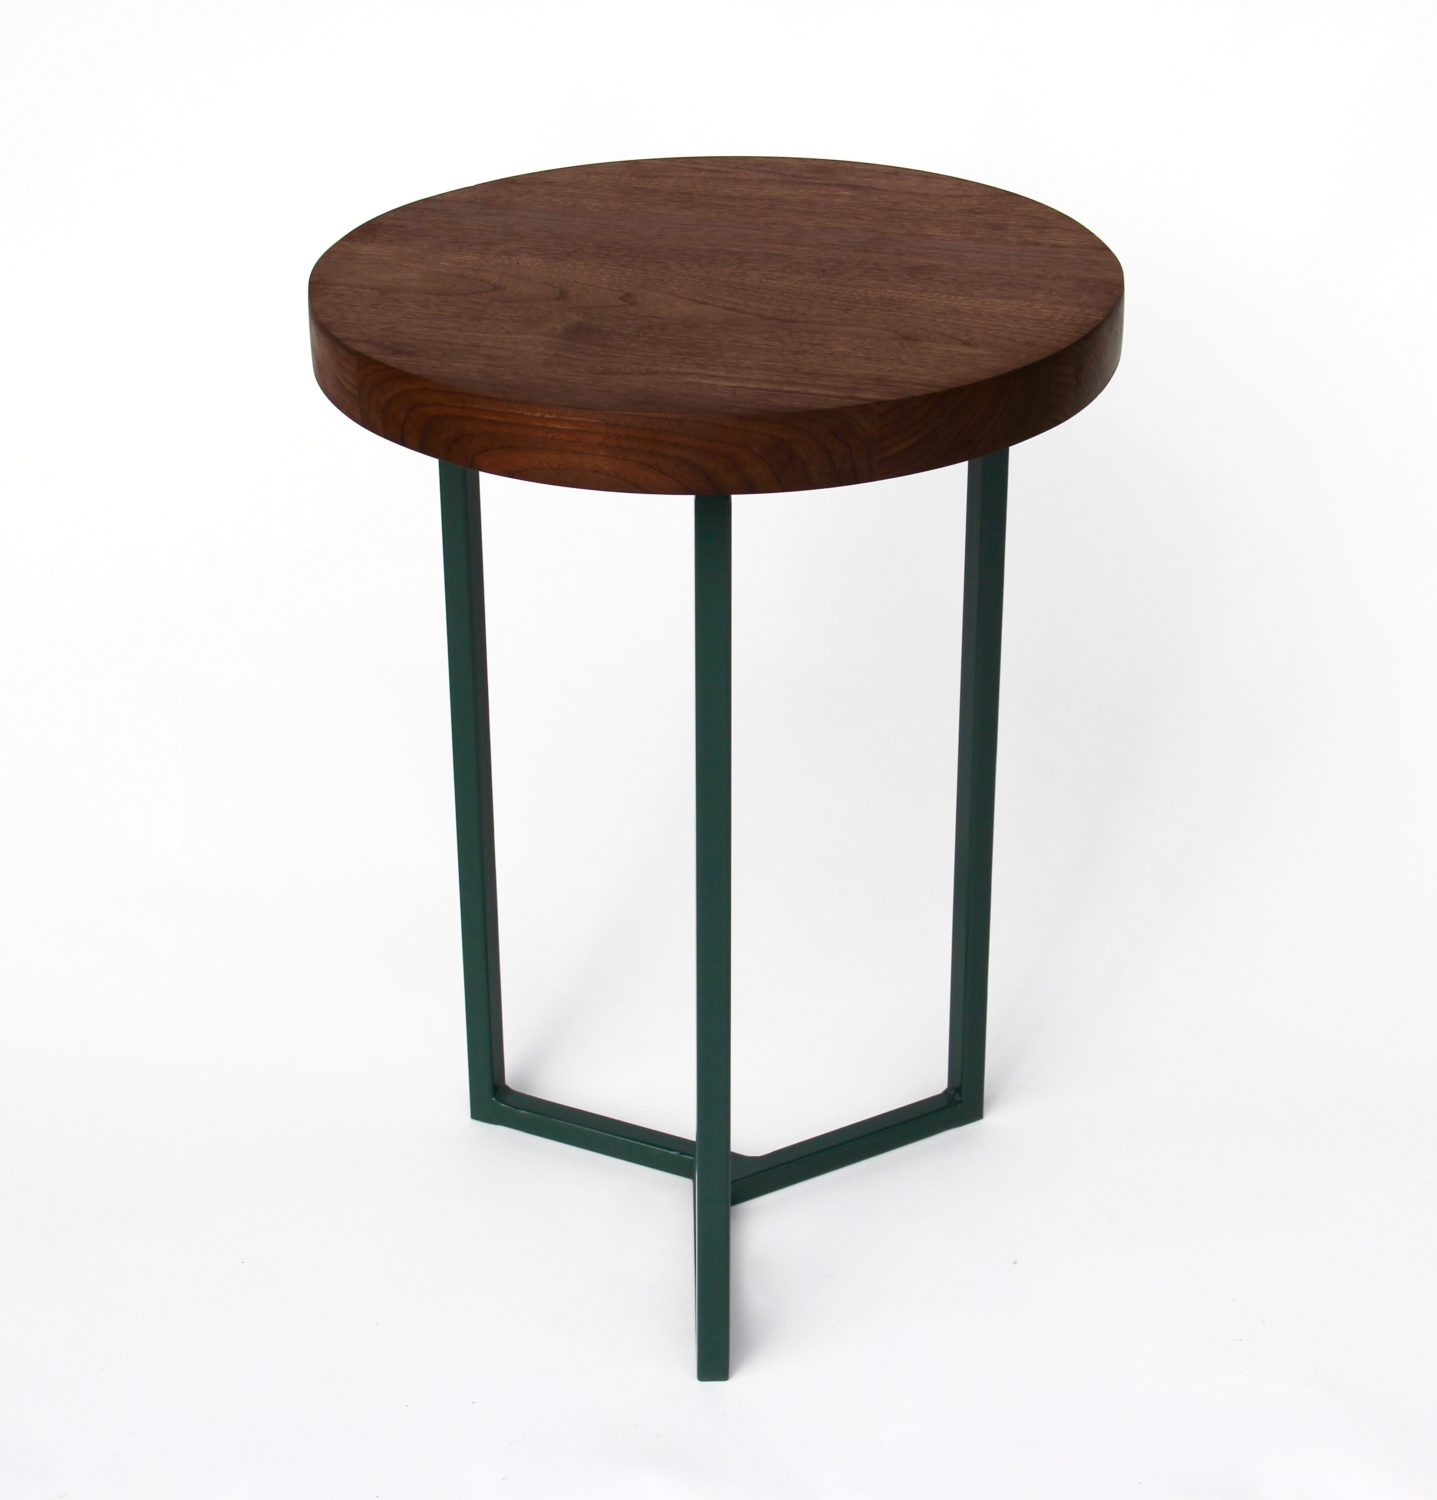 Modern Round Side Table by Long White Beard Furniture